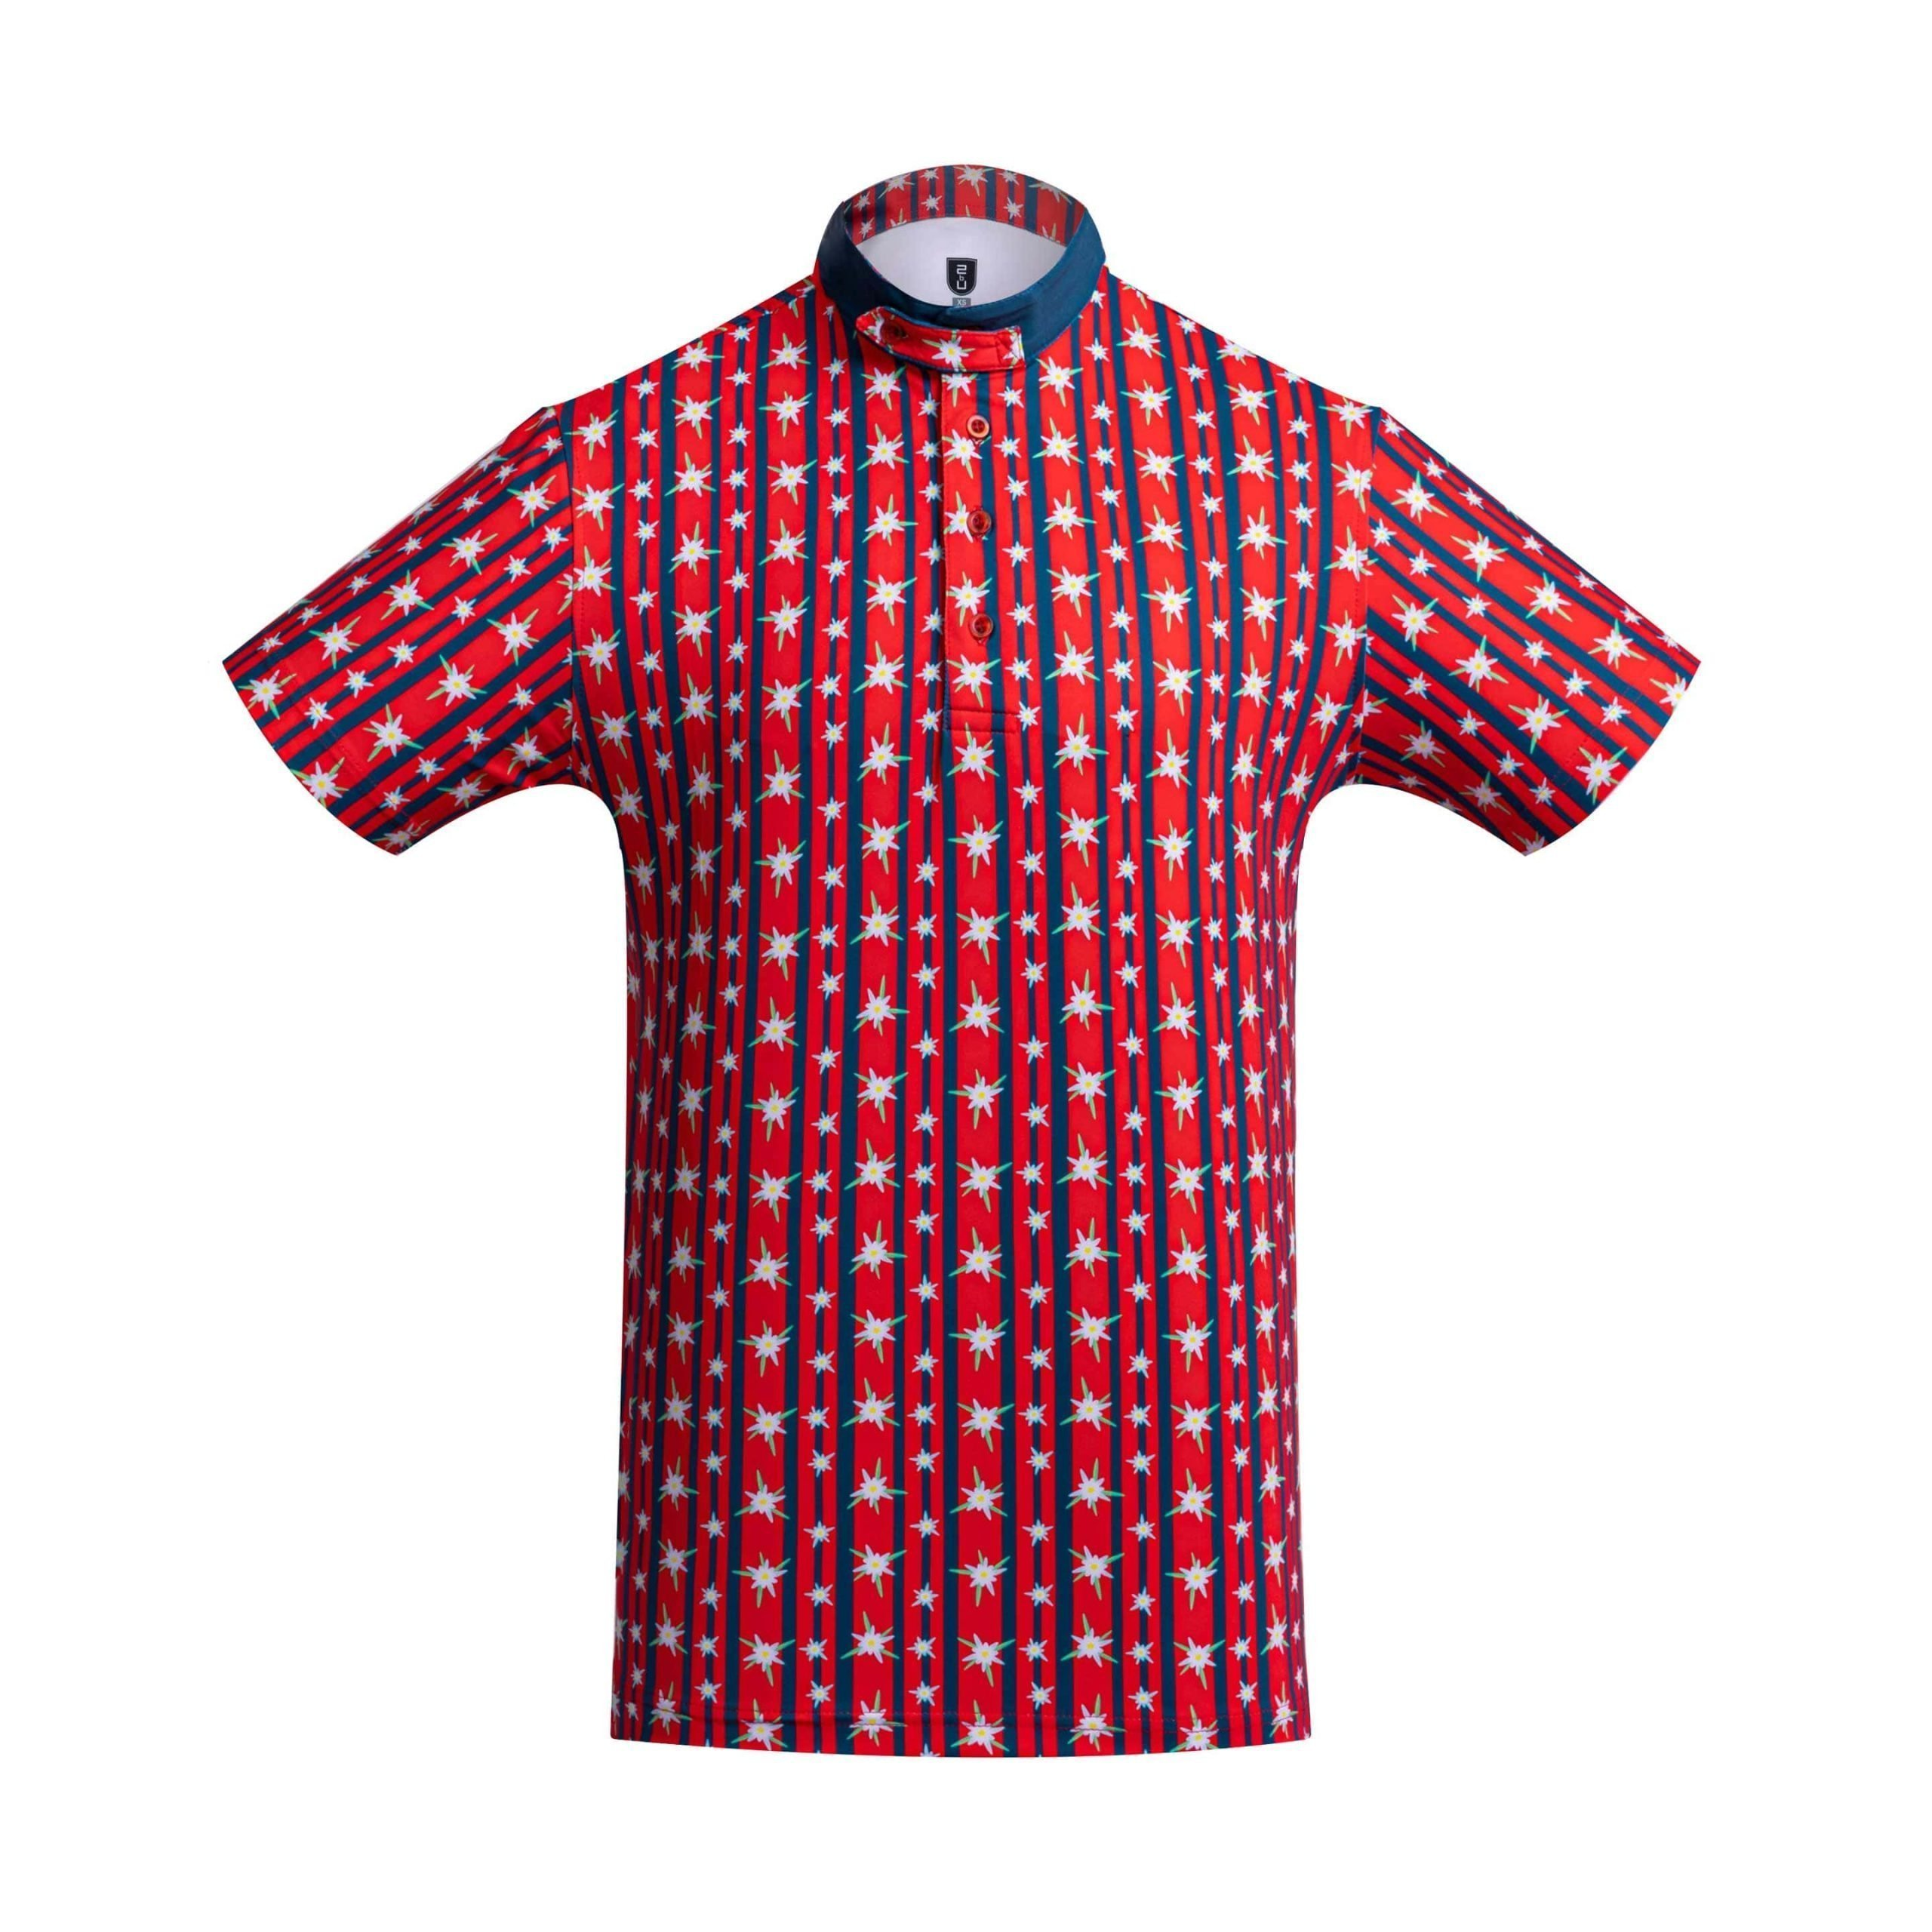 Golf Shirt – Red Edelweiss